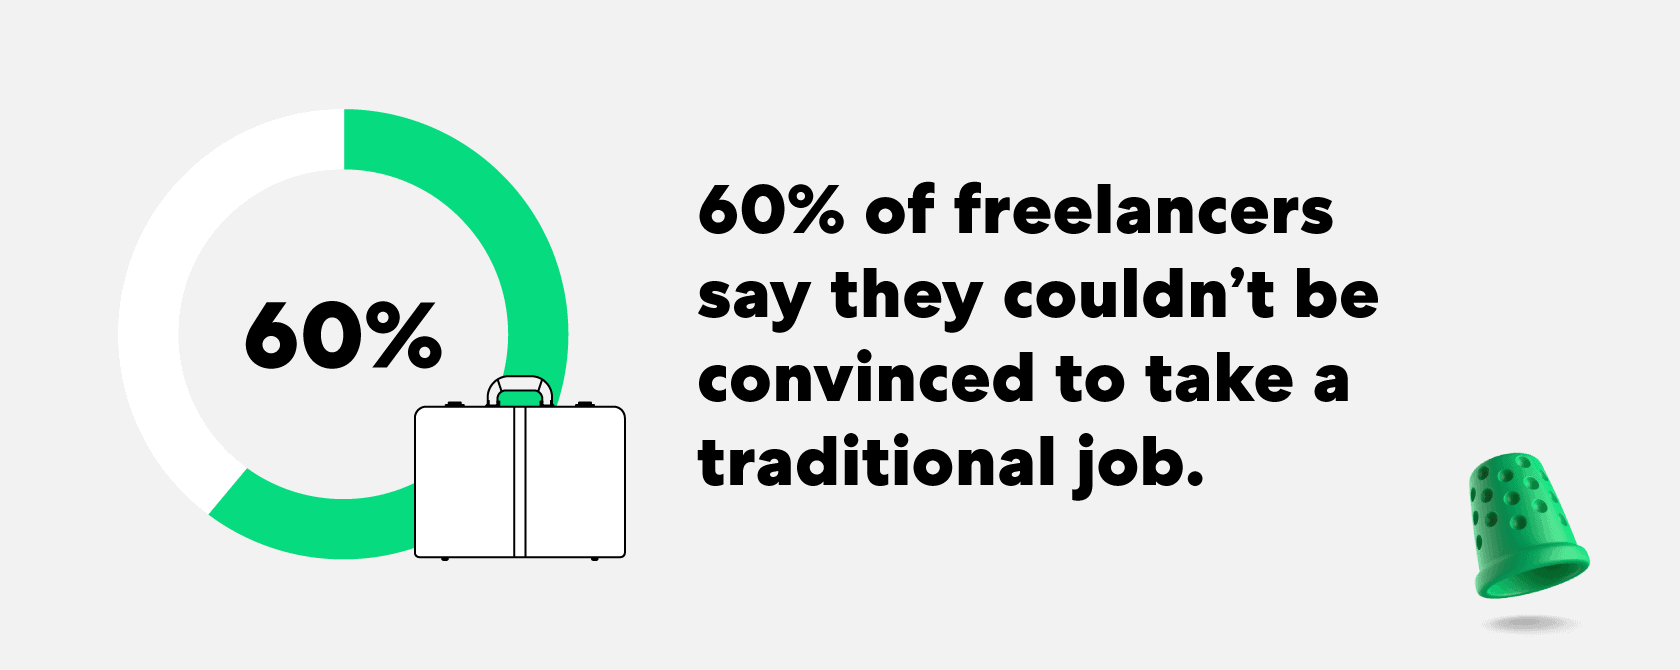 60-not-convinced-to-take-a-traditional-job